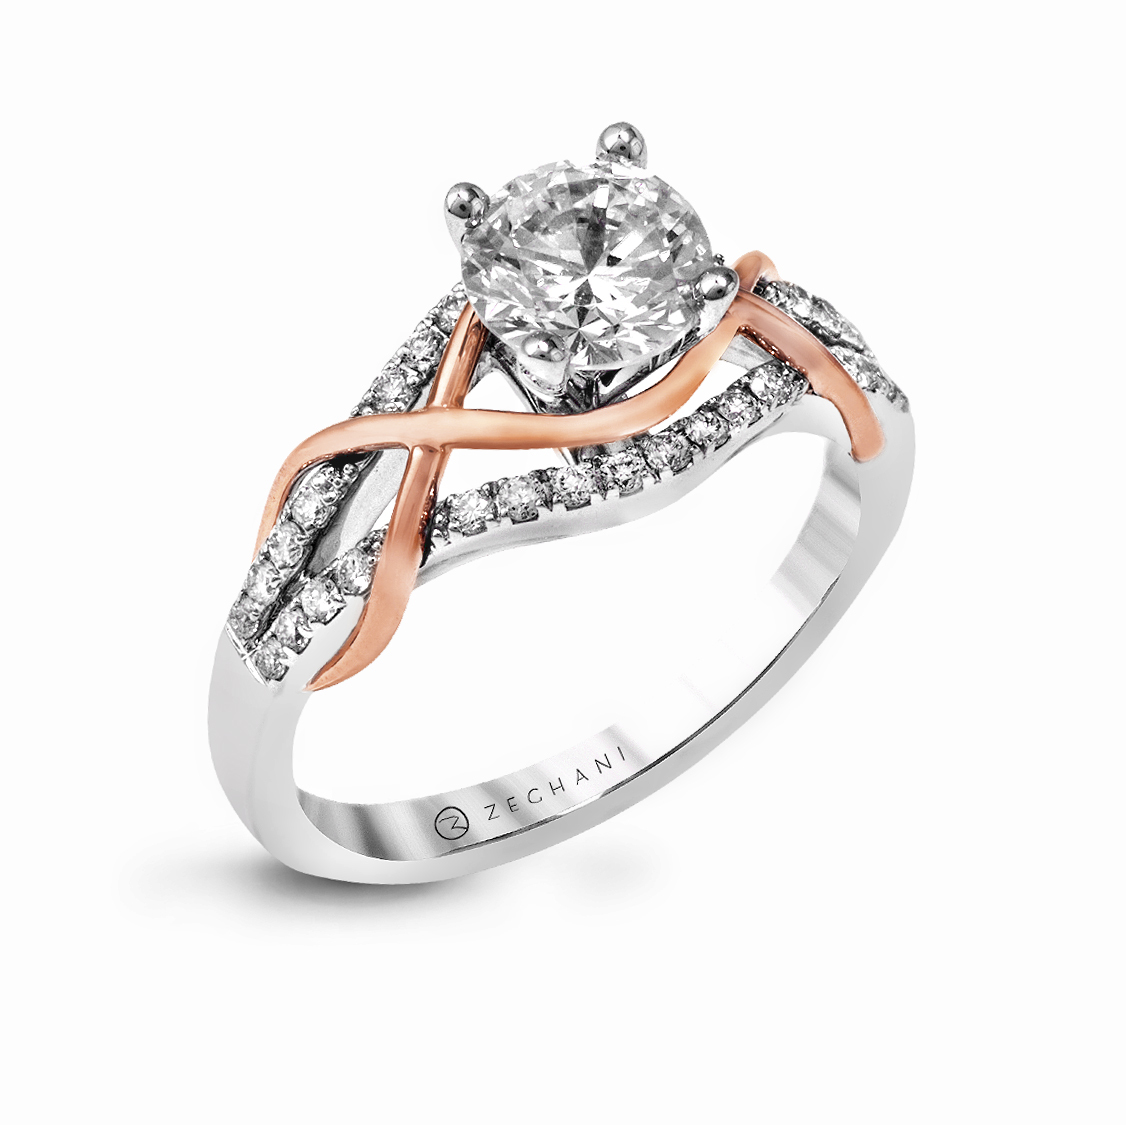 5d39190a4 14Karat white and Rose Gold Engagement Ring .25D - Simon Jewelers